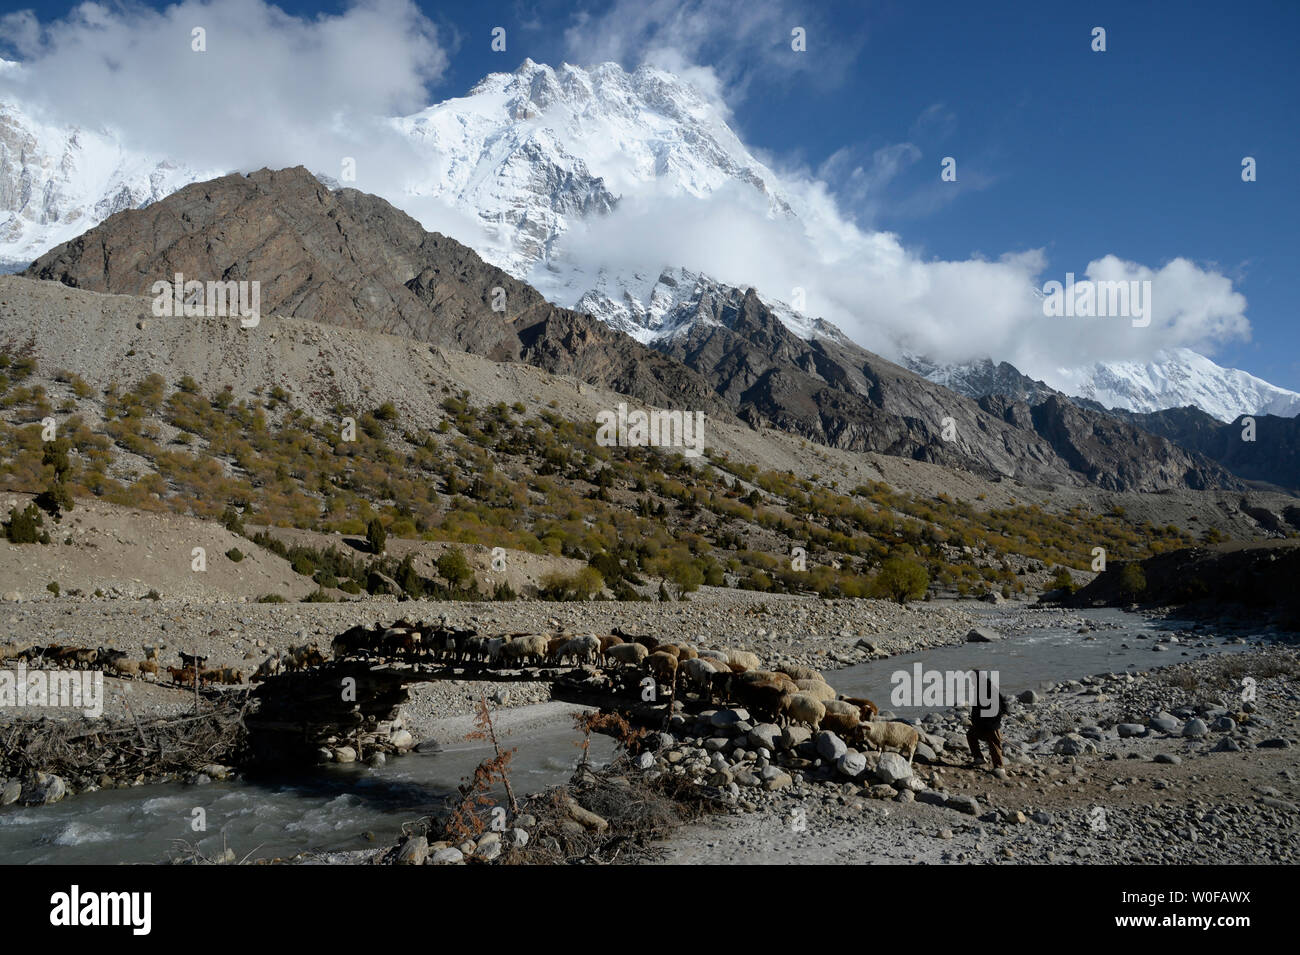 Pakistan, Gilgit Baltistan area, a sheperd is crossing with his sheep the Shaigiri river at 3500m high at the bottom of the Nanga Parbat mountain (8126m). - Stock Image